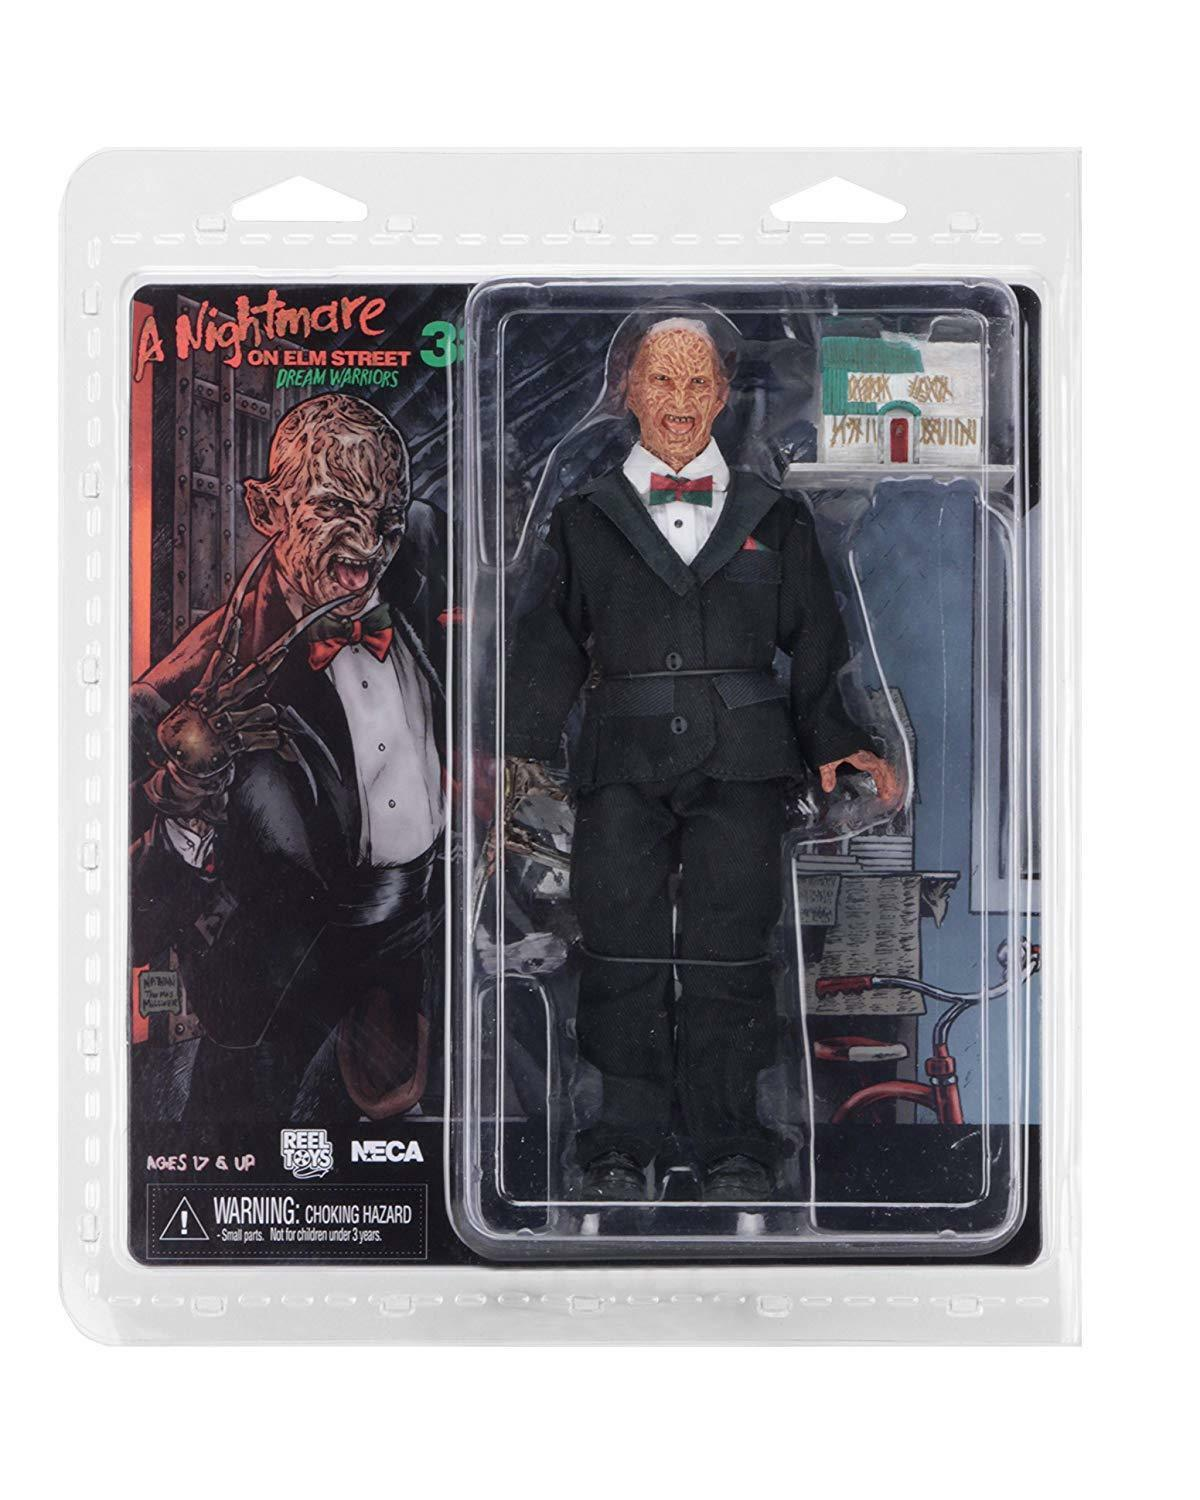 Nightmare on Elm Street  Tuxedo Freddy 20 cm 8 inch Clothed Retro Action Figure